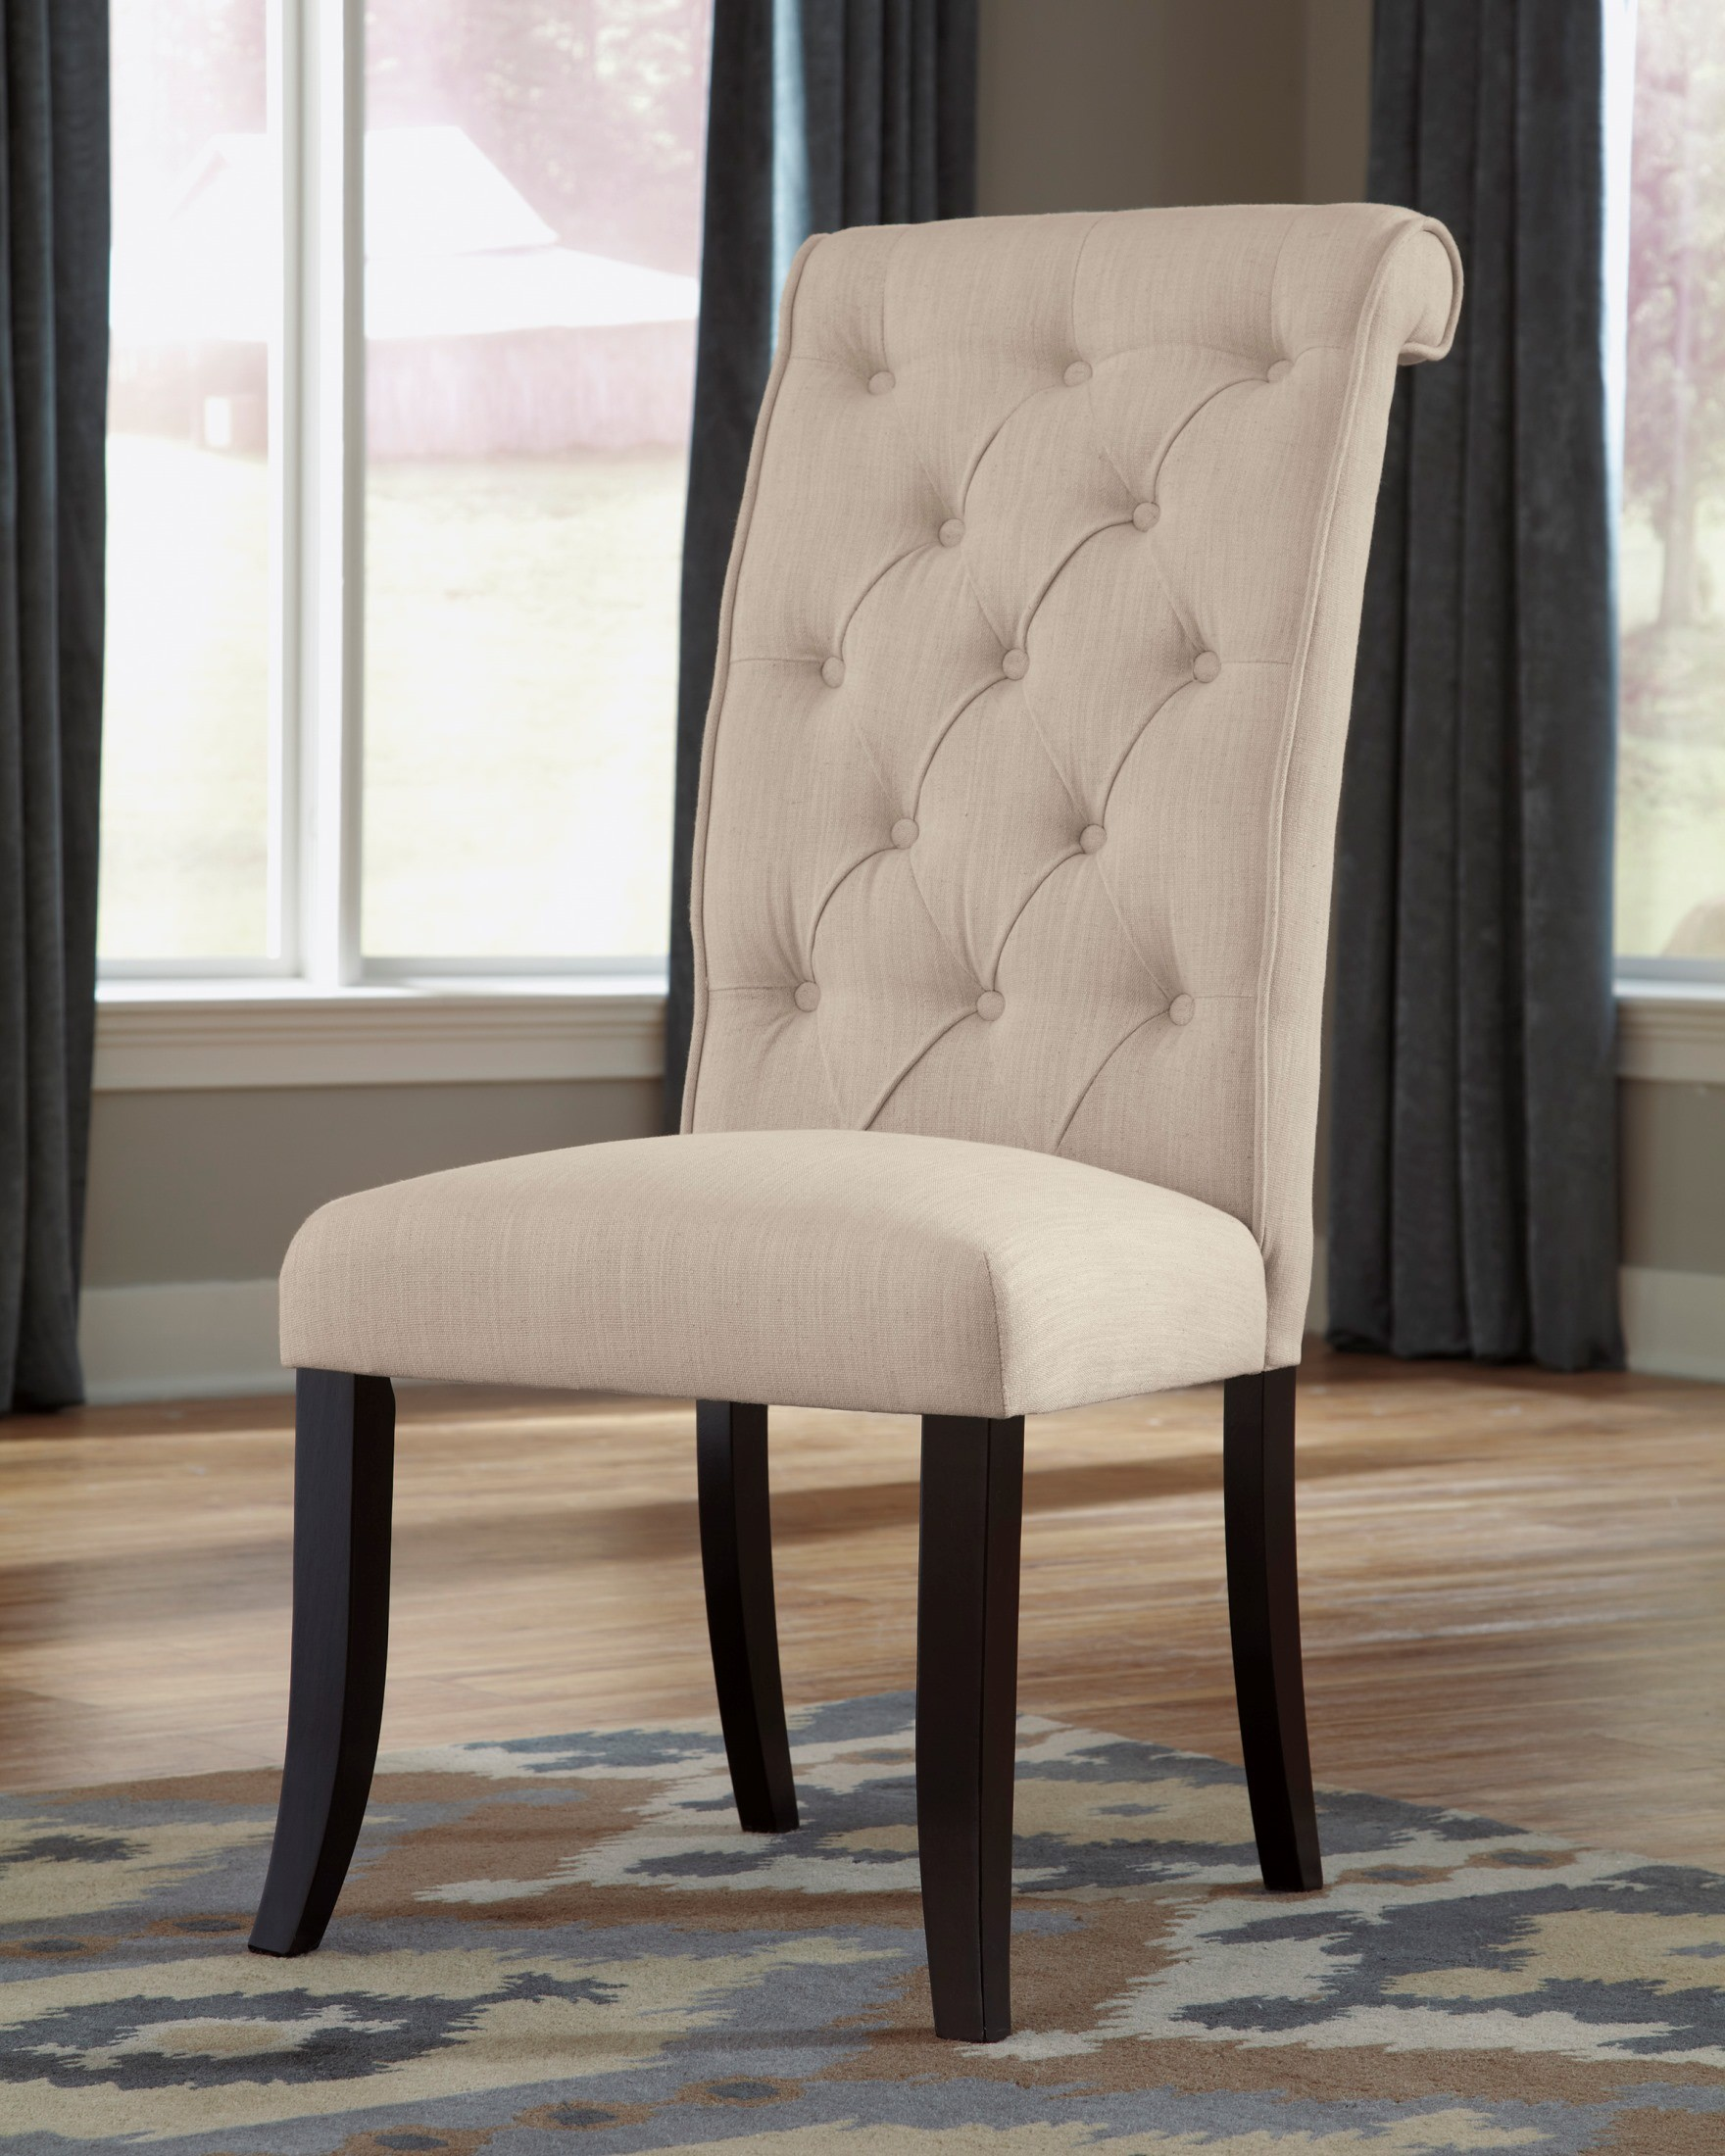 Tripton Dining Upholstered Side Chair Set of 2 from Ashley  : d530 01 from colemanfurniture.com size 1760 x 2200 jpeg 583kB